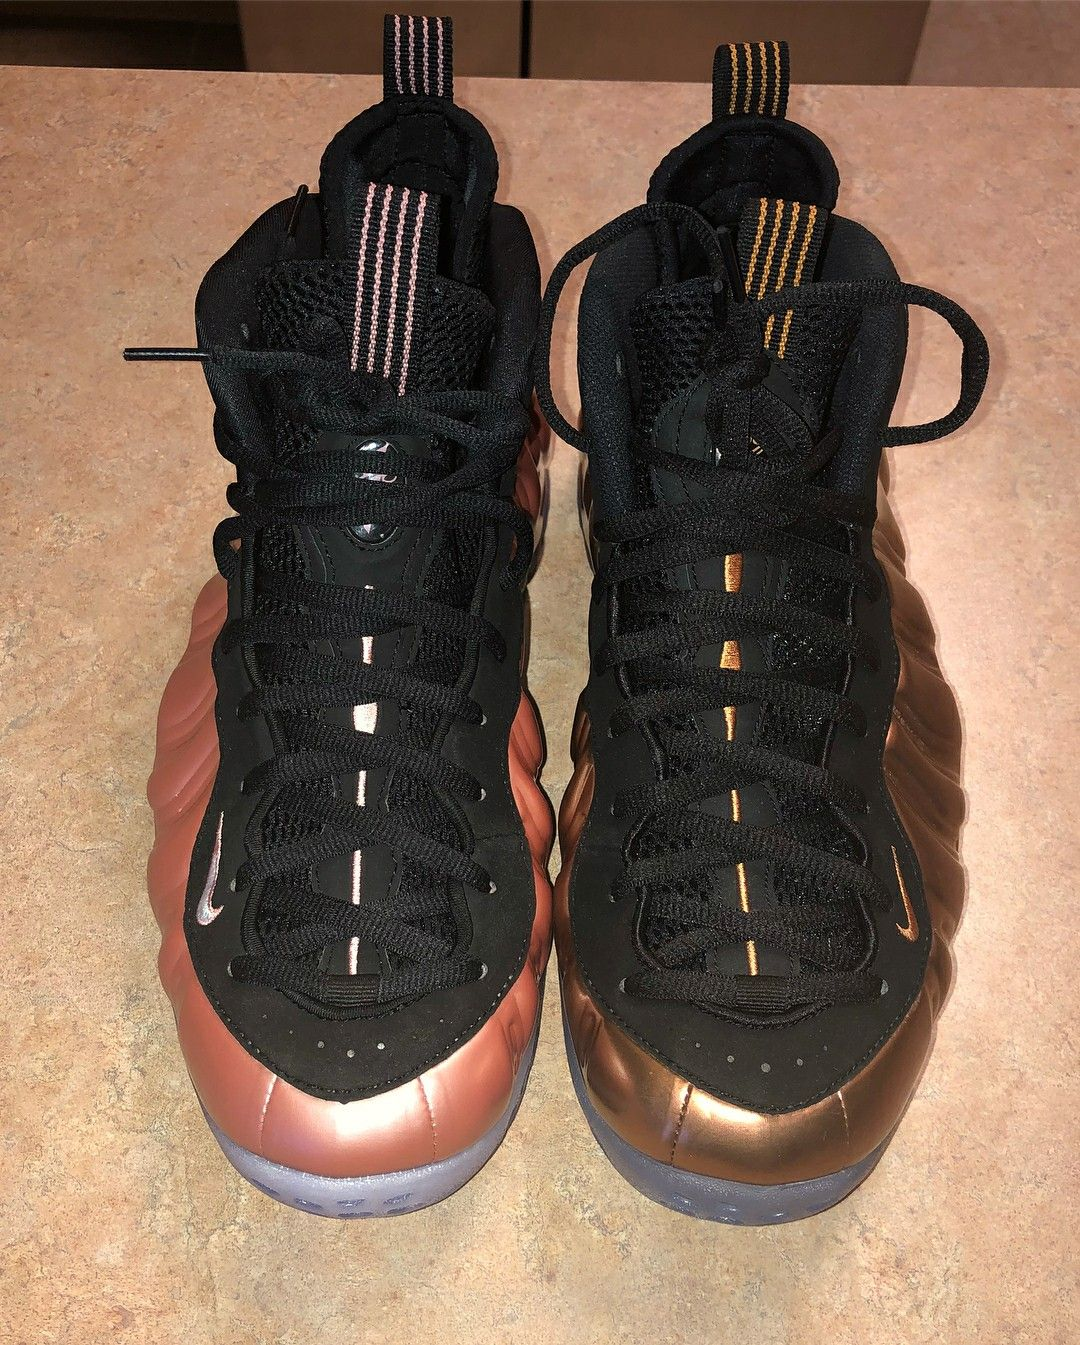 quality design 11b0f dc50b Elemental Rose vs Copper Foamposite. | Things I like. ... in ...